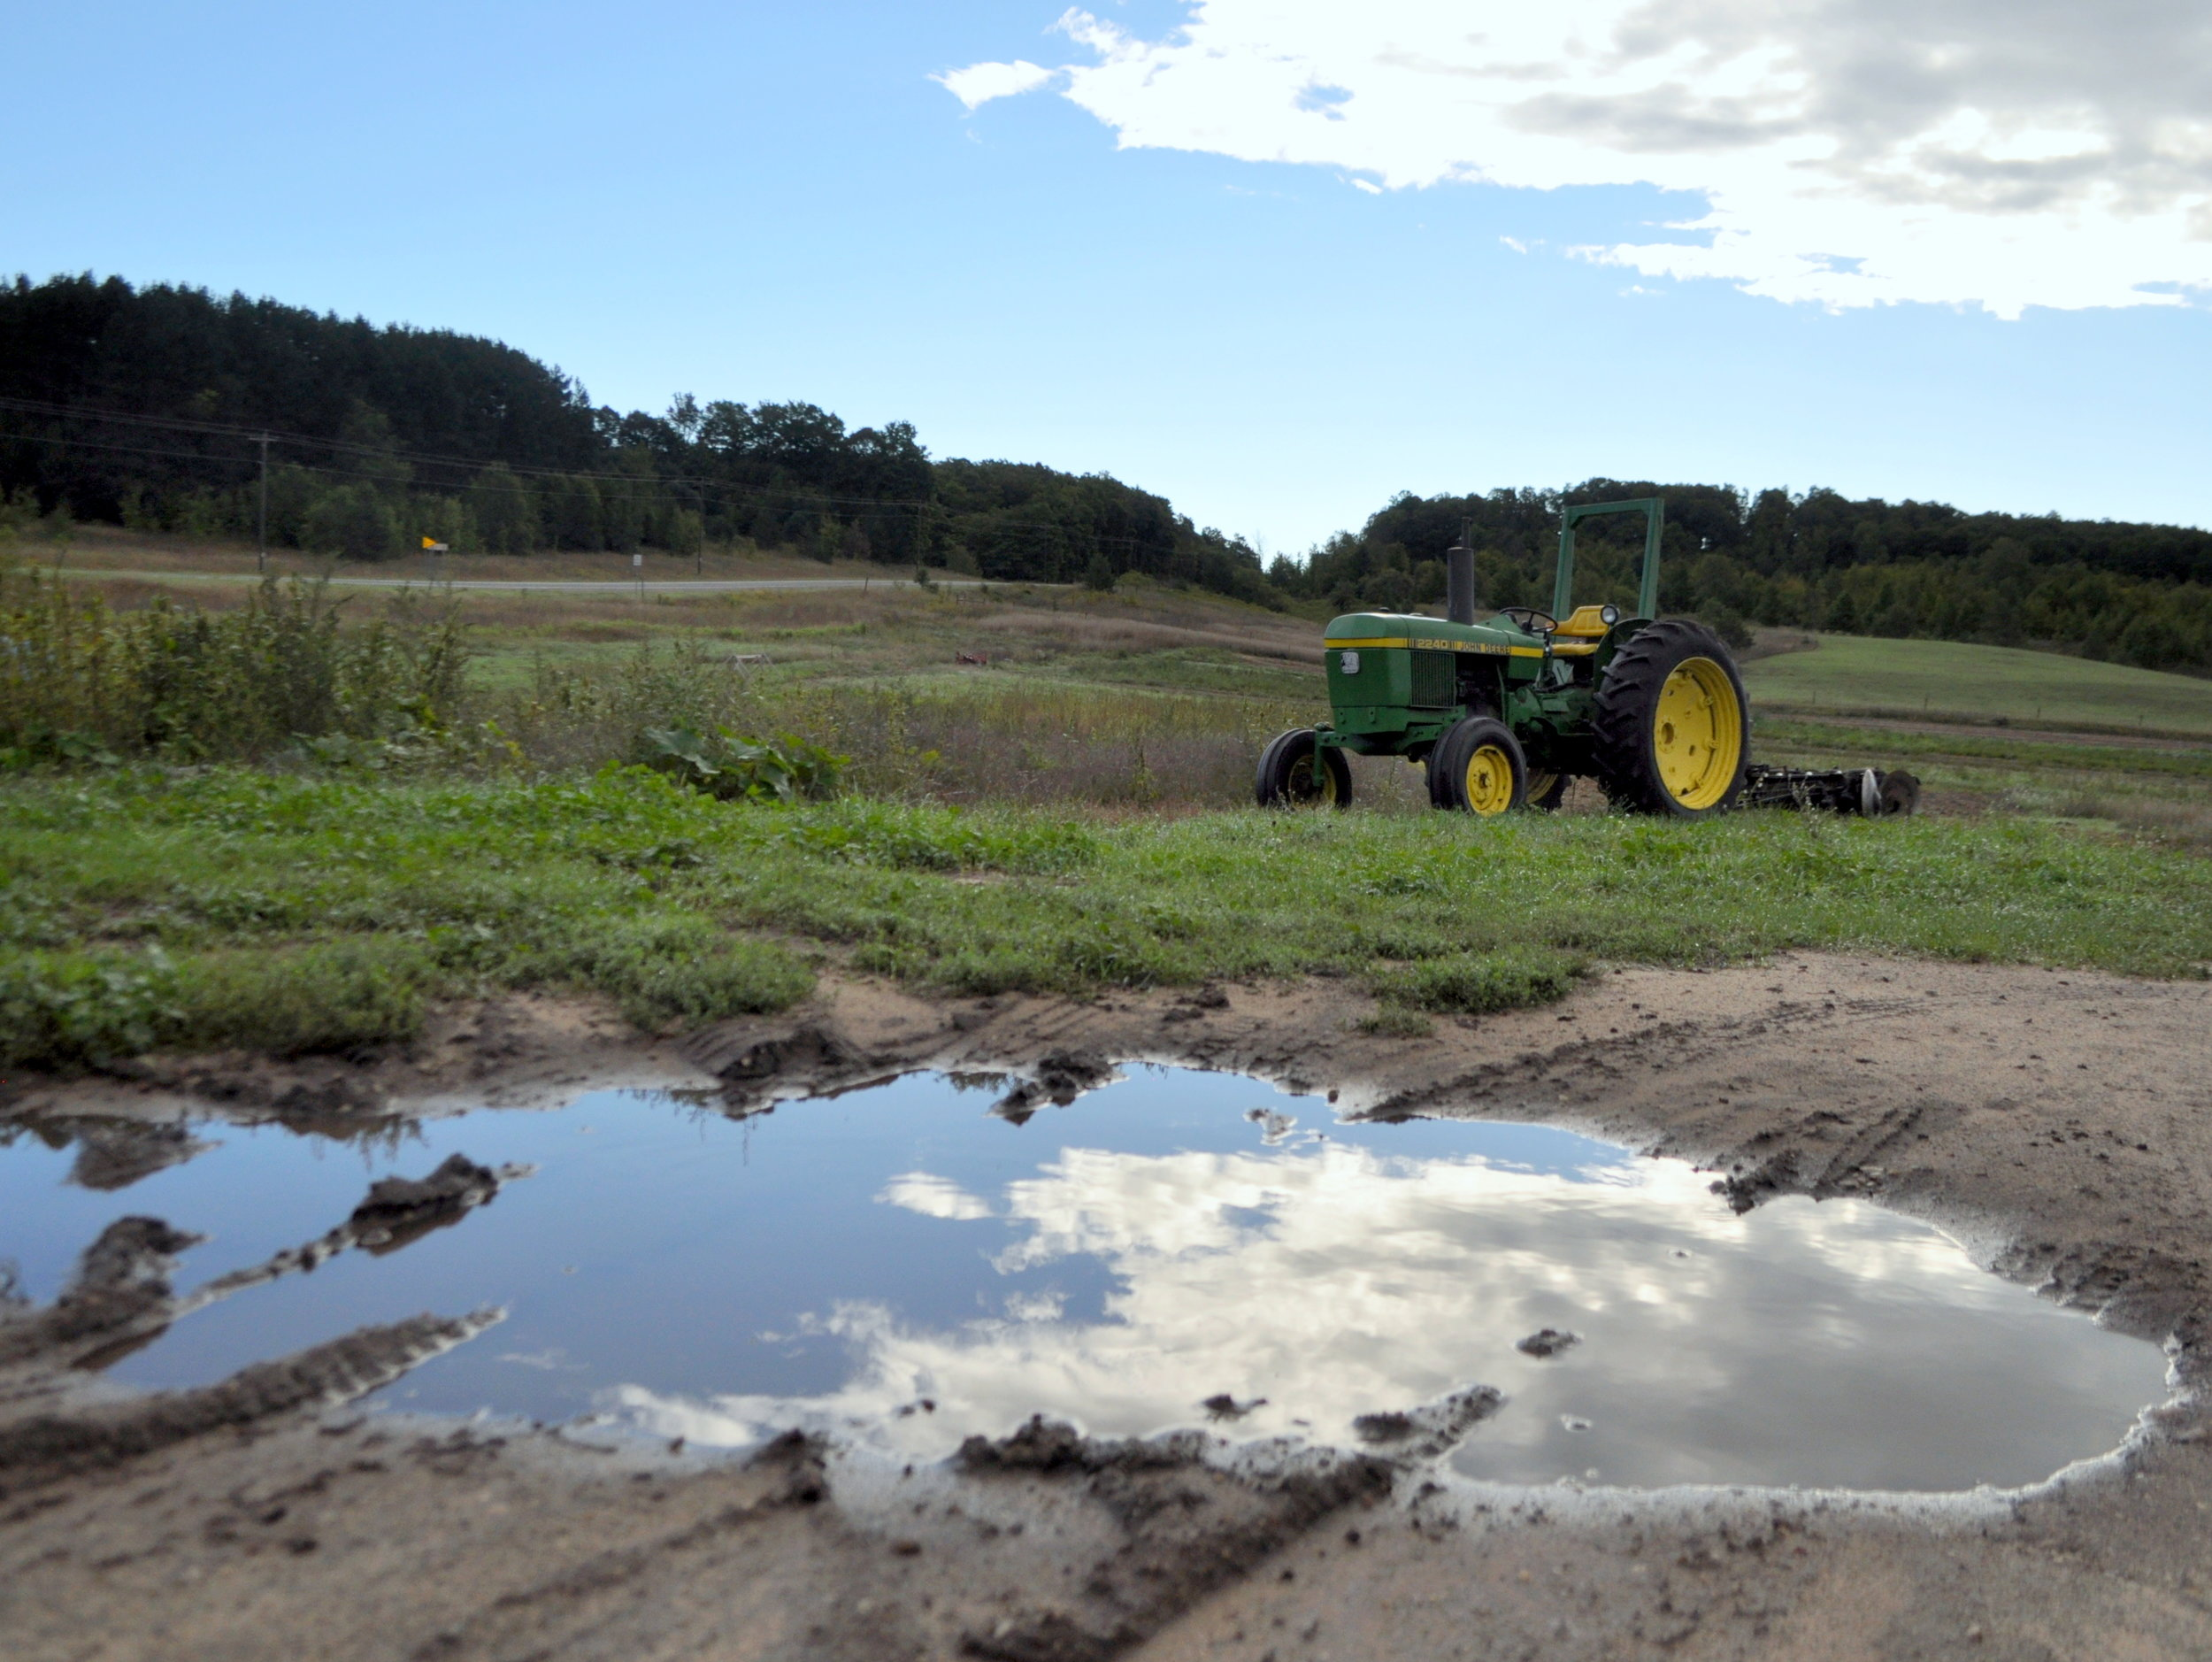 A puddle reflects the sky and a tractor takes five.